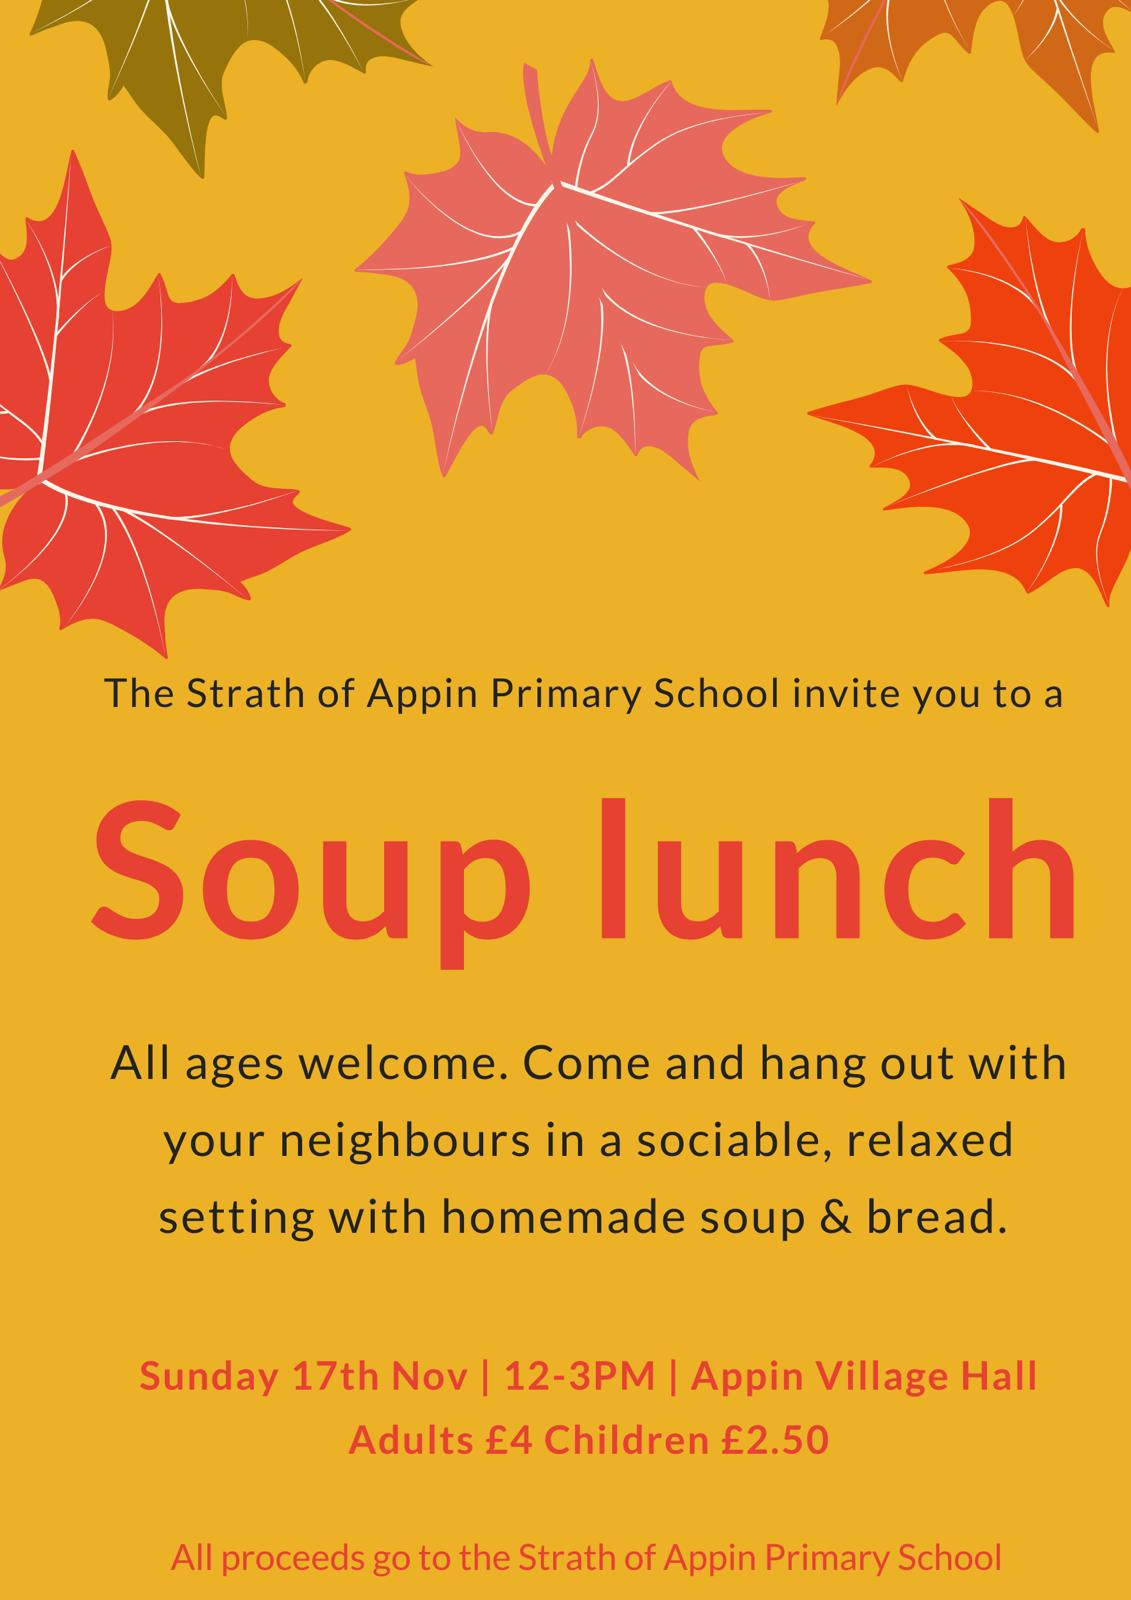 Soup lunch at Appin Village Hall